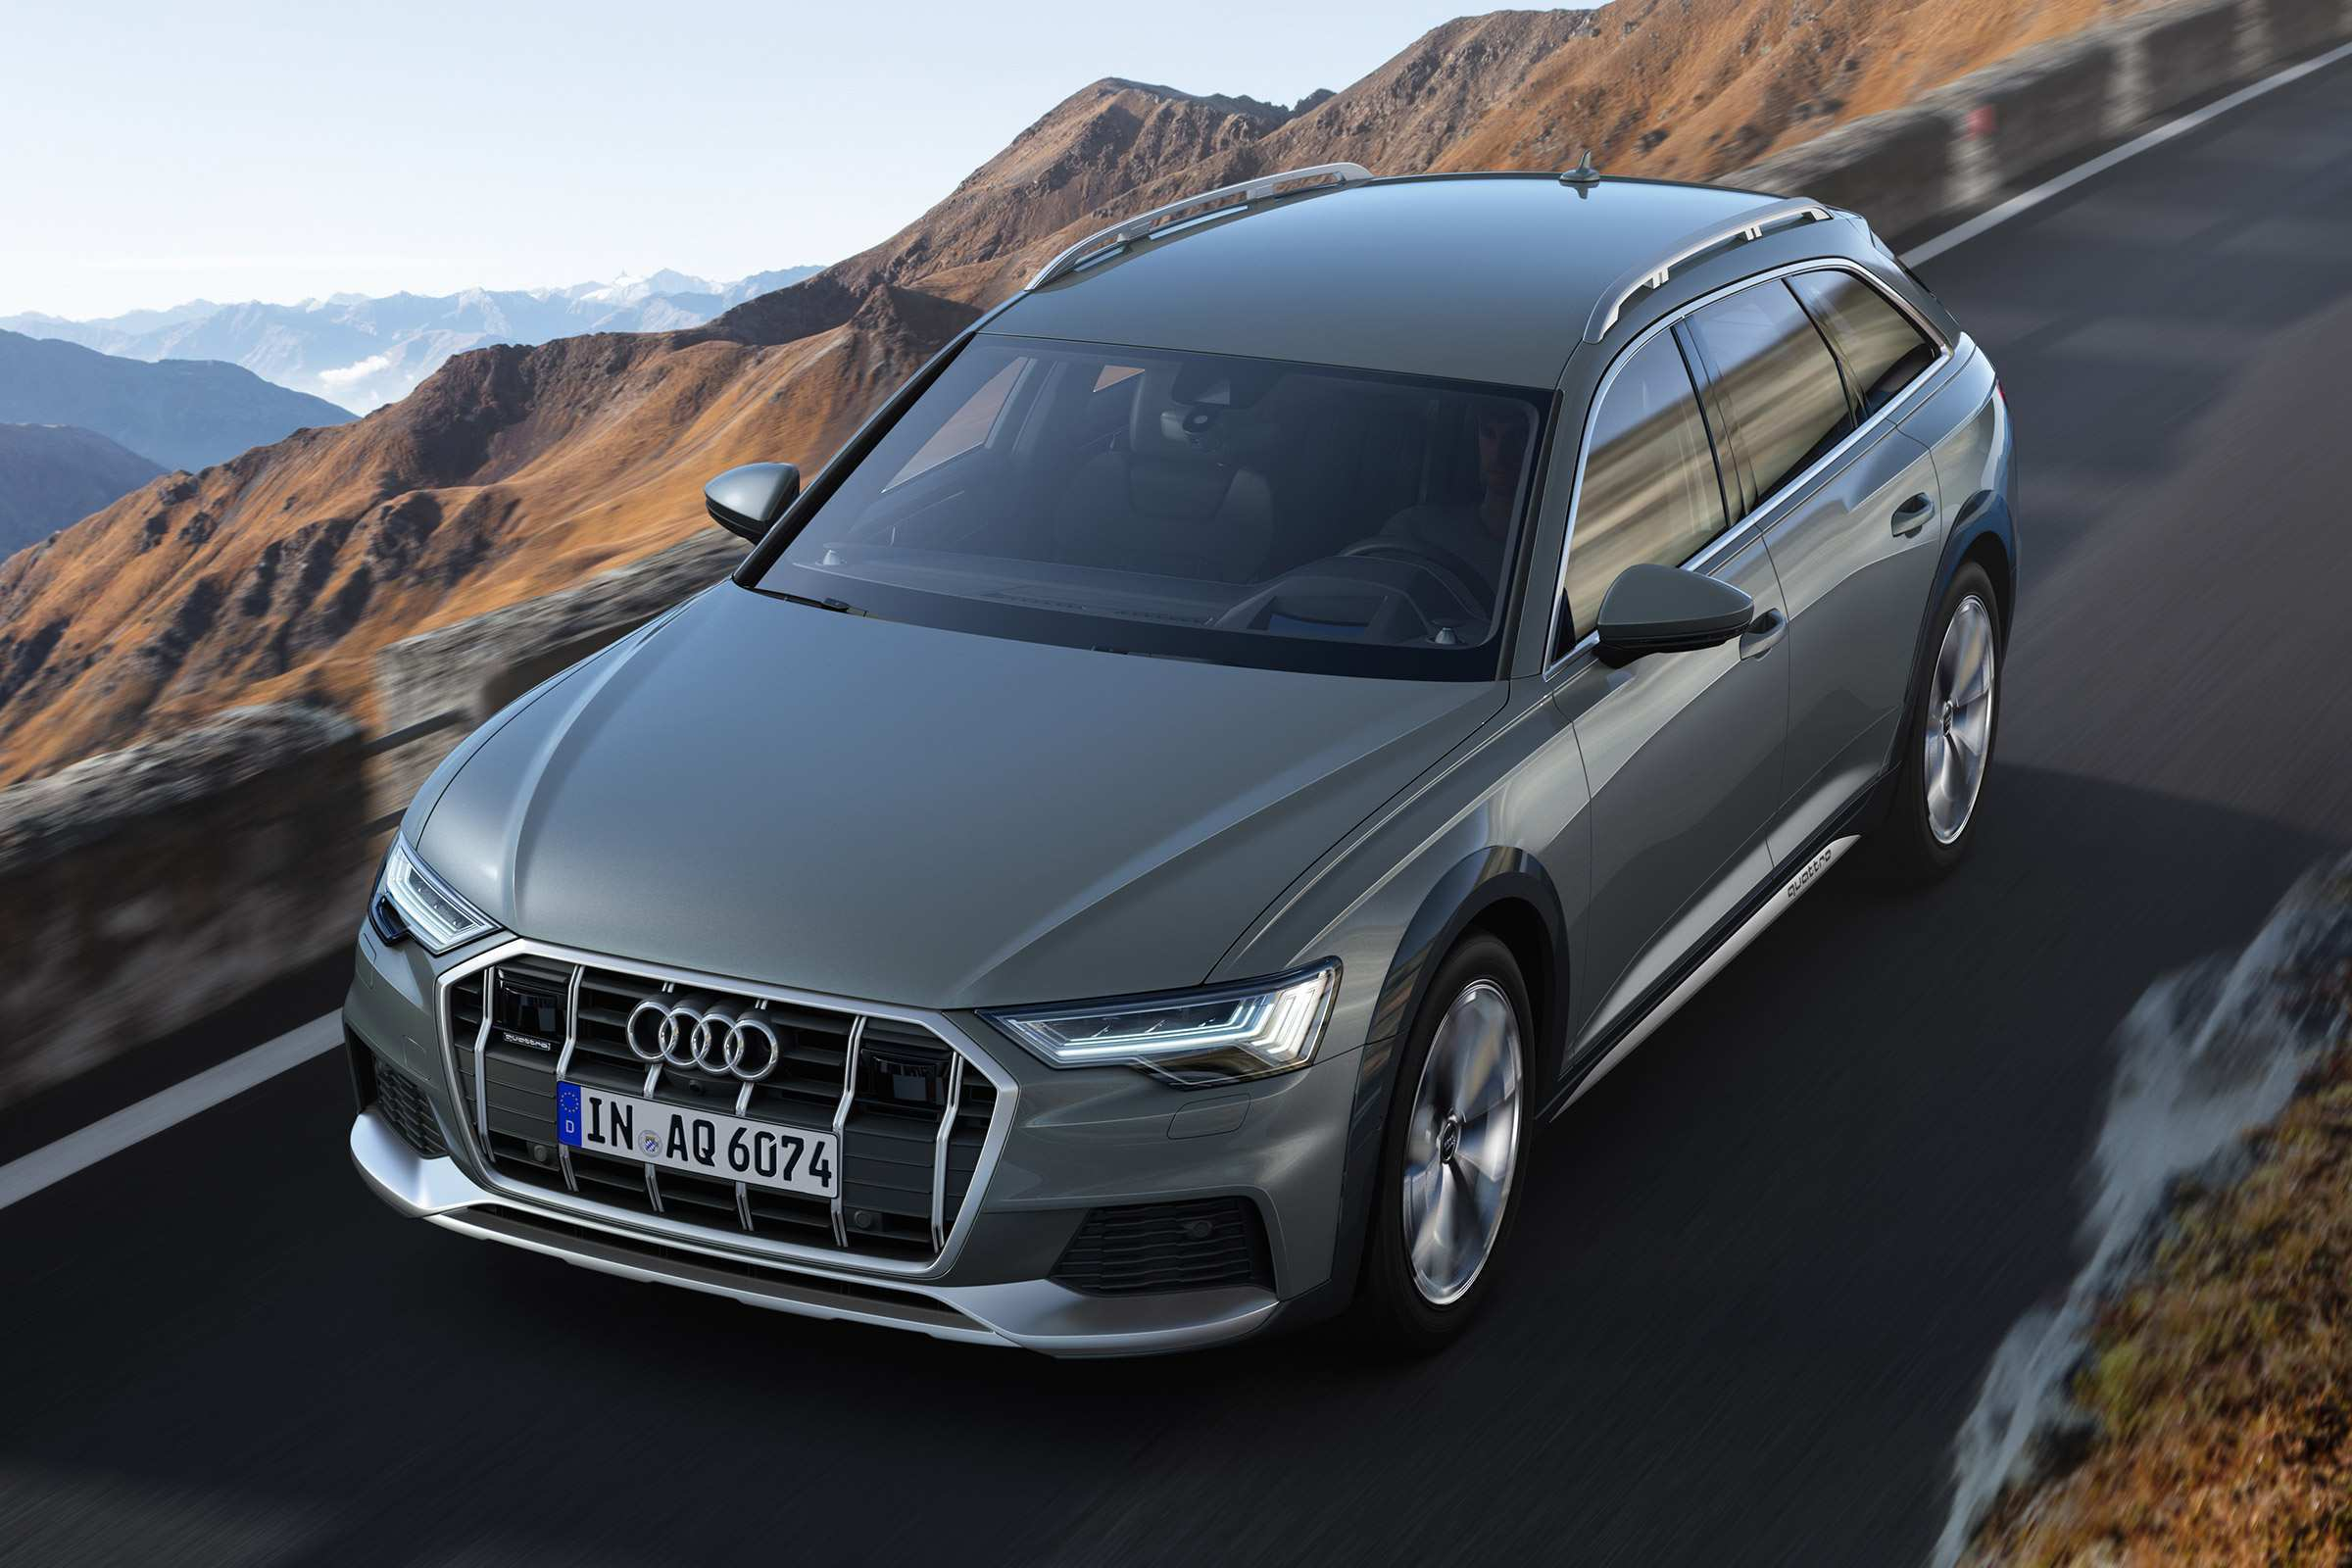 55 All New 2019 Audi Allroad Price And Review